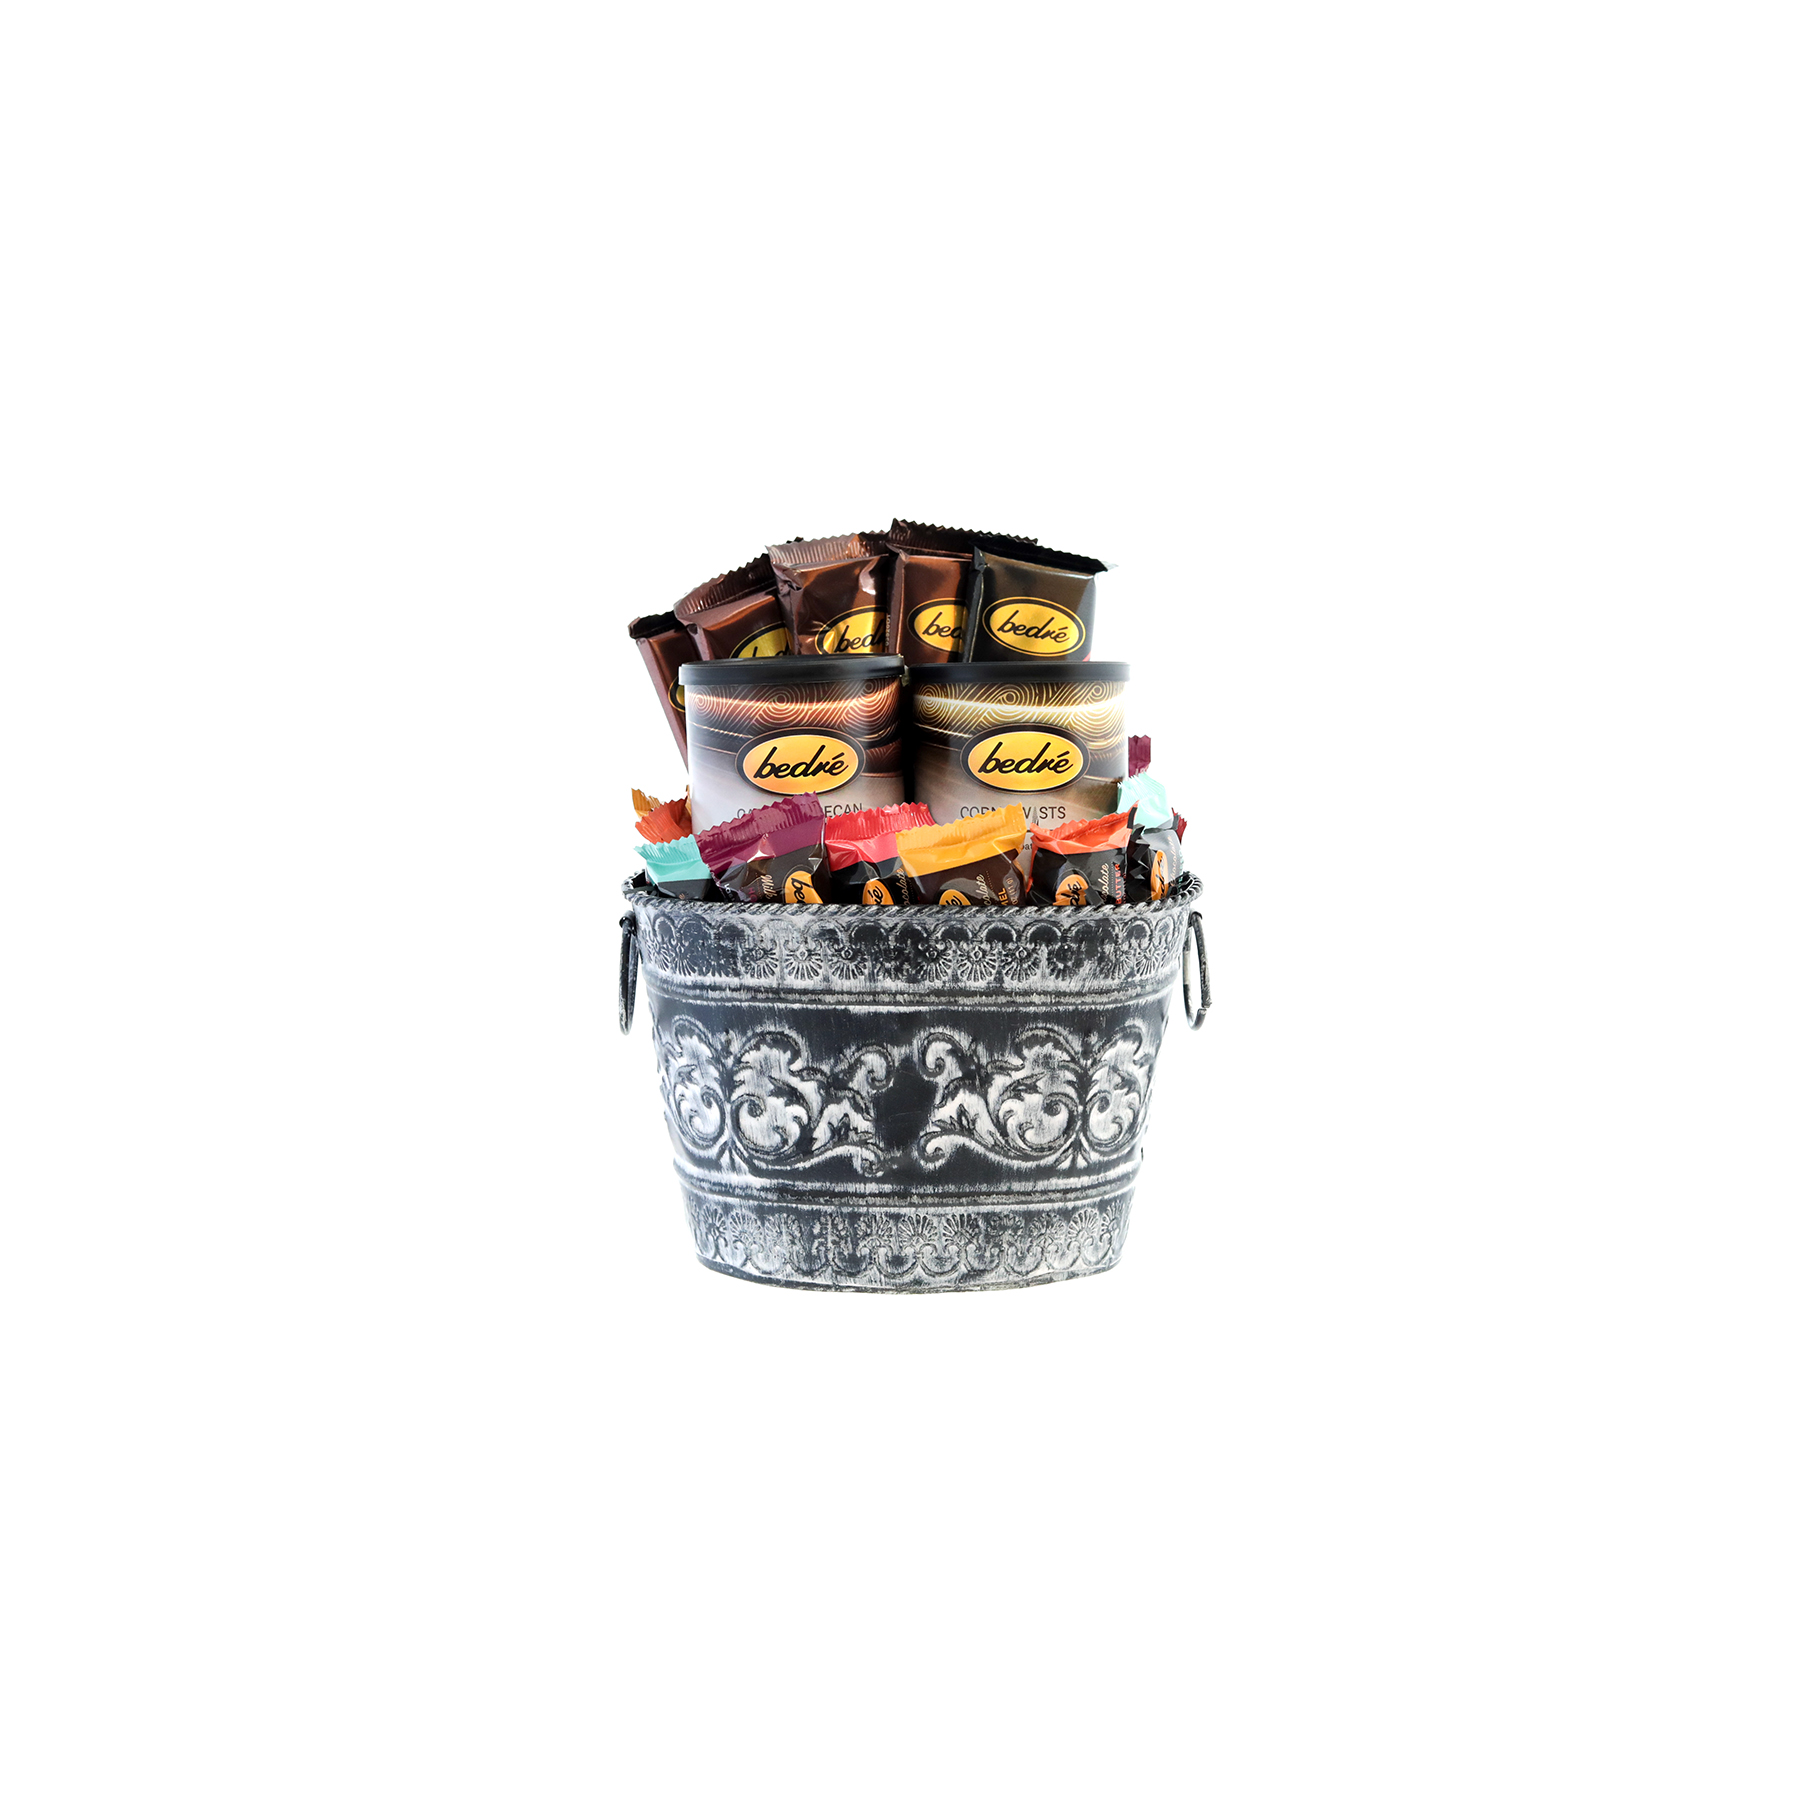 Small Mother's Day tin basket with assorted Bedre chocolates